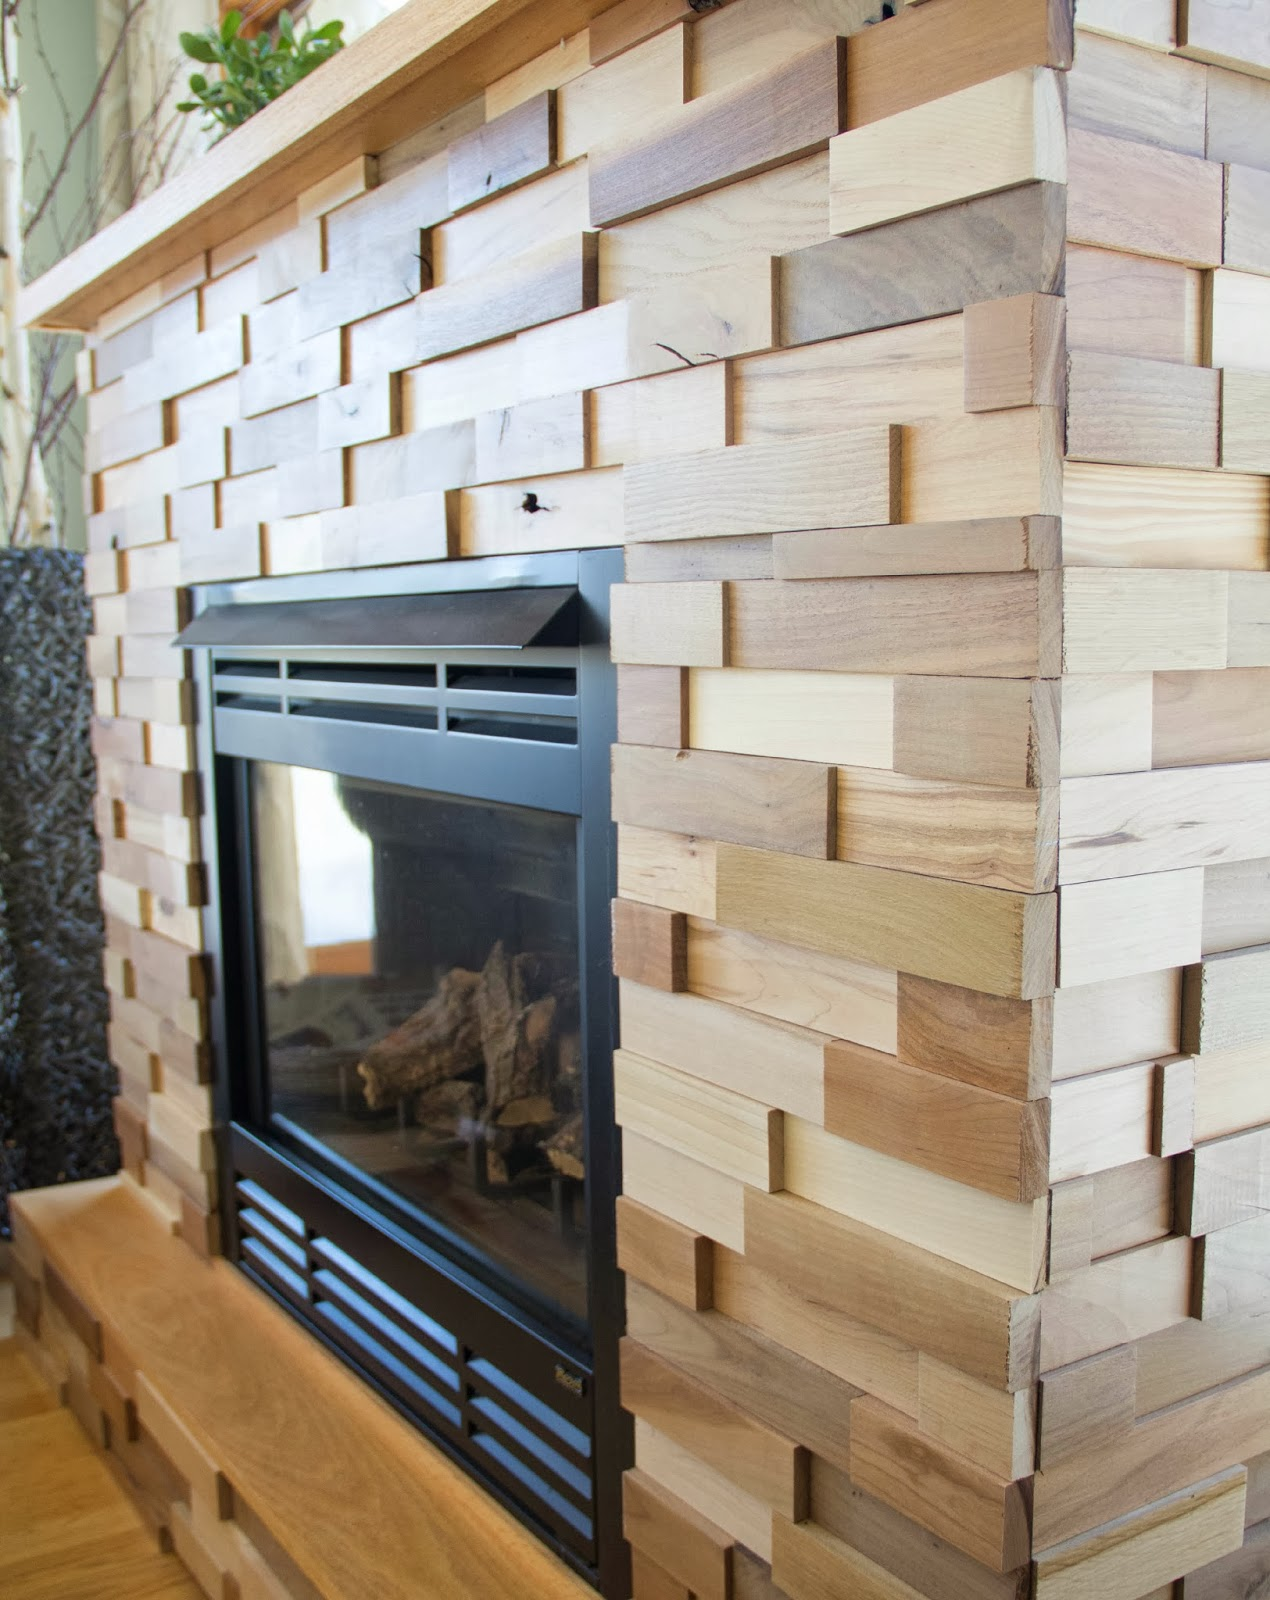 fireplace makeover - The Divine Living Space blog